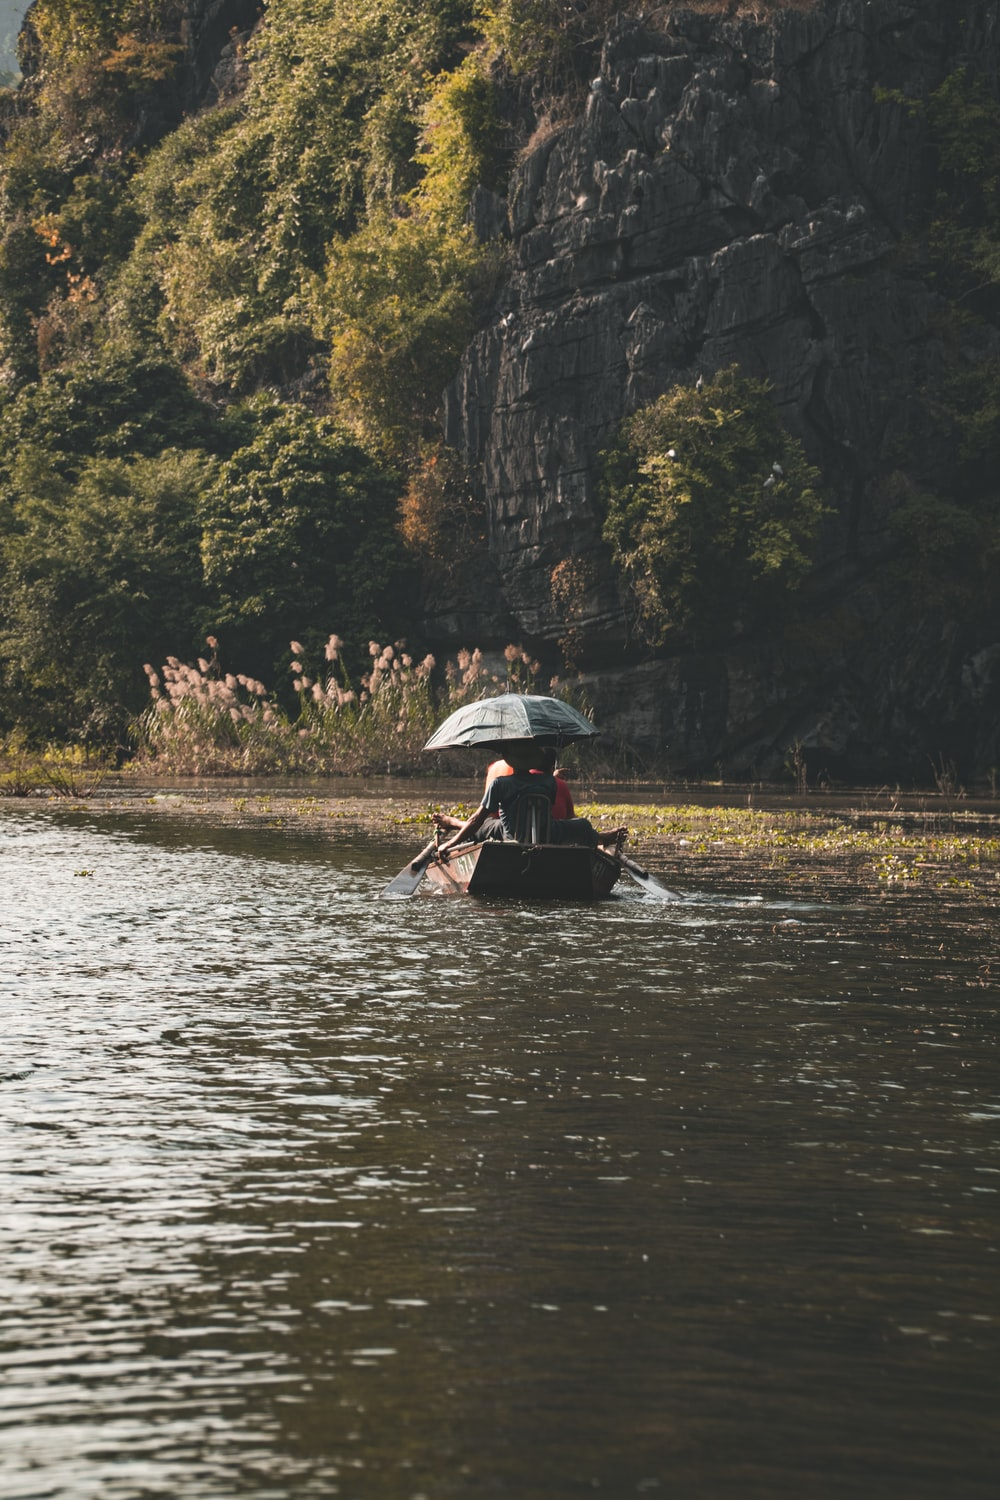 person riding on boat on river during daytime